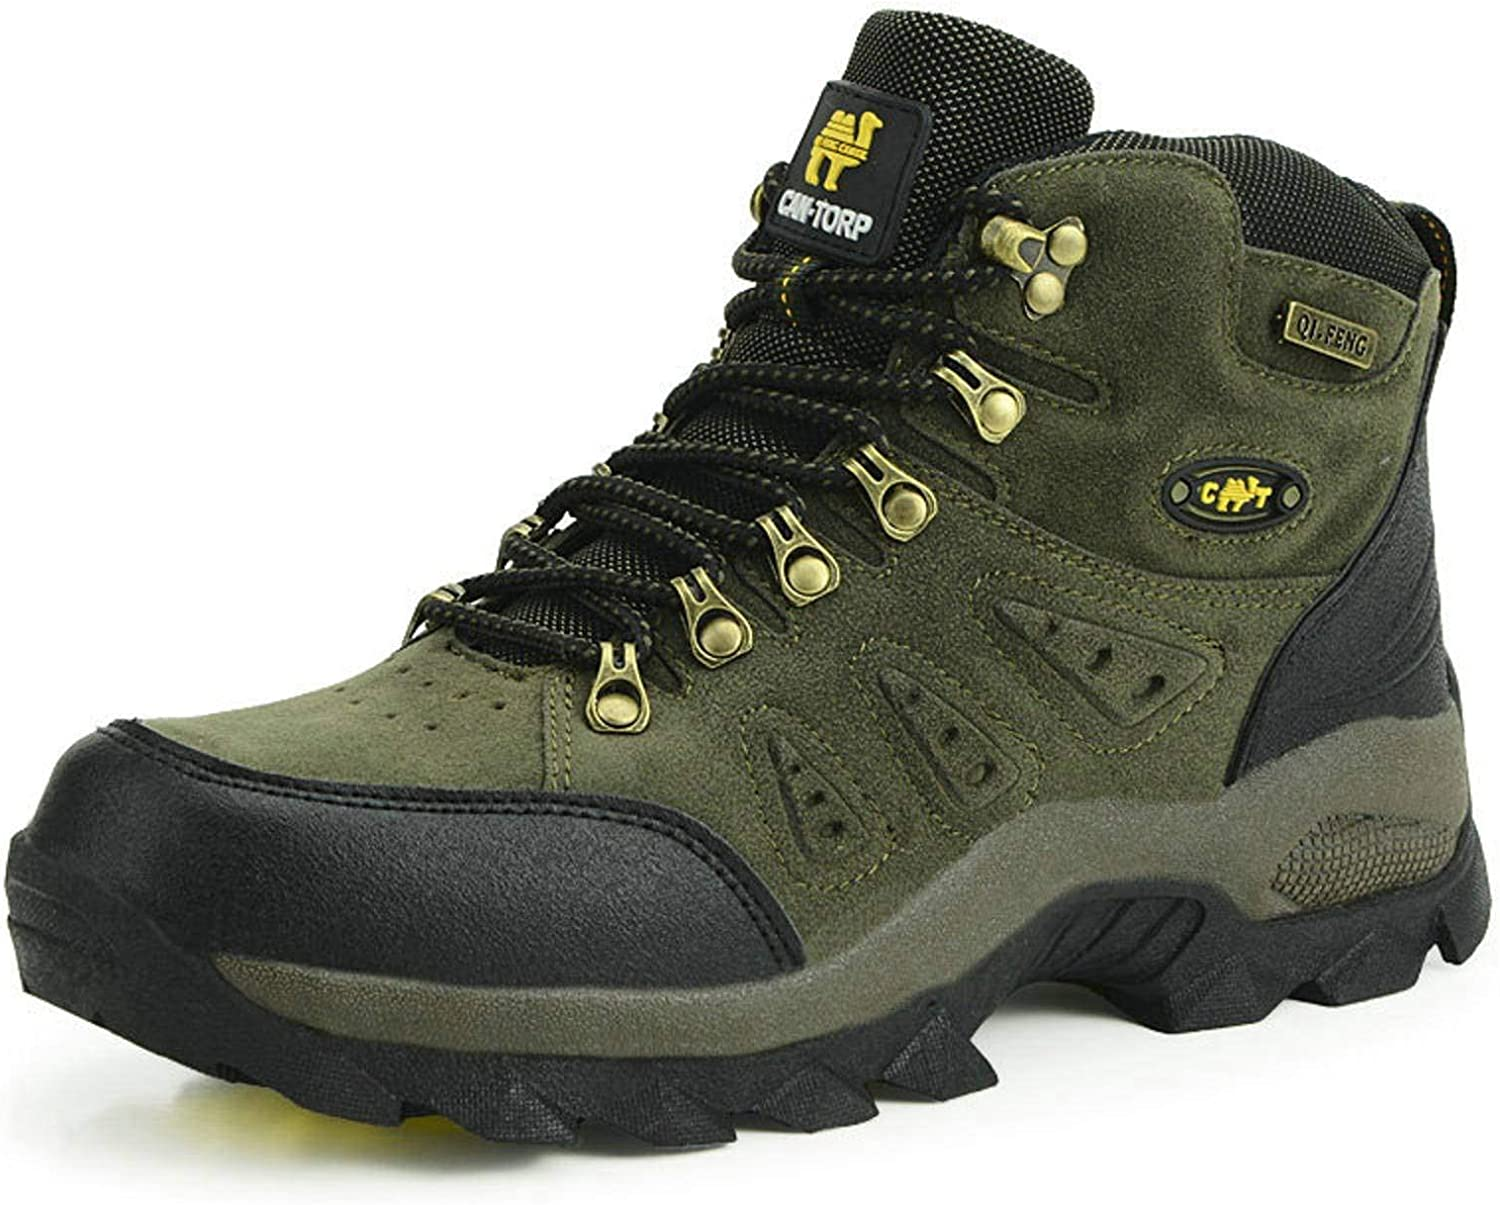 N\C Popular products Outdoor Waterproof High quality Hiking Boots Women's H Shoes Men's